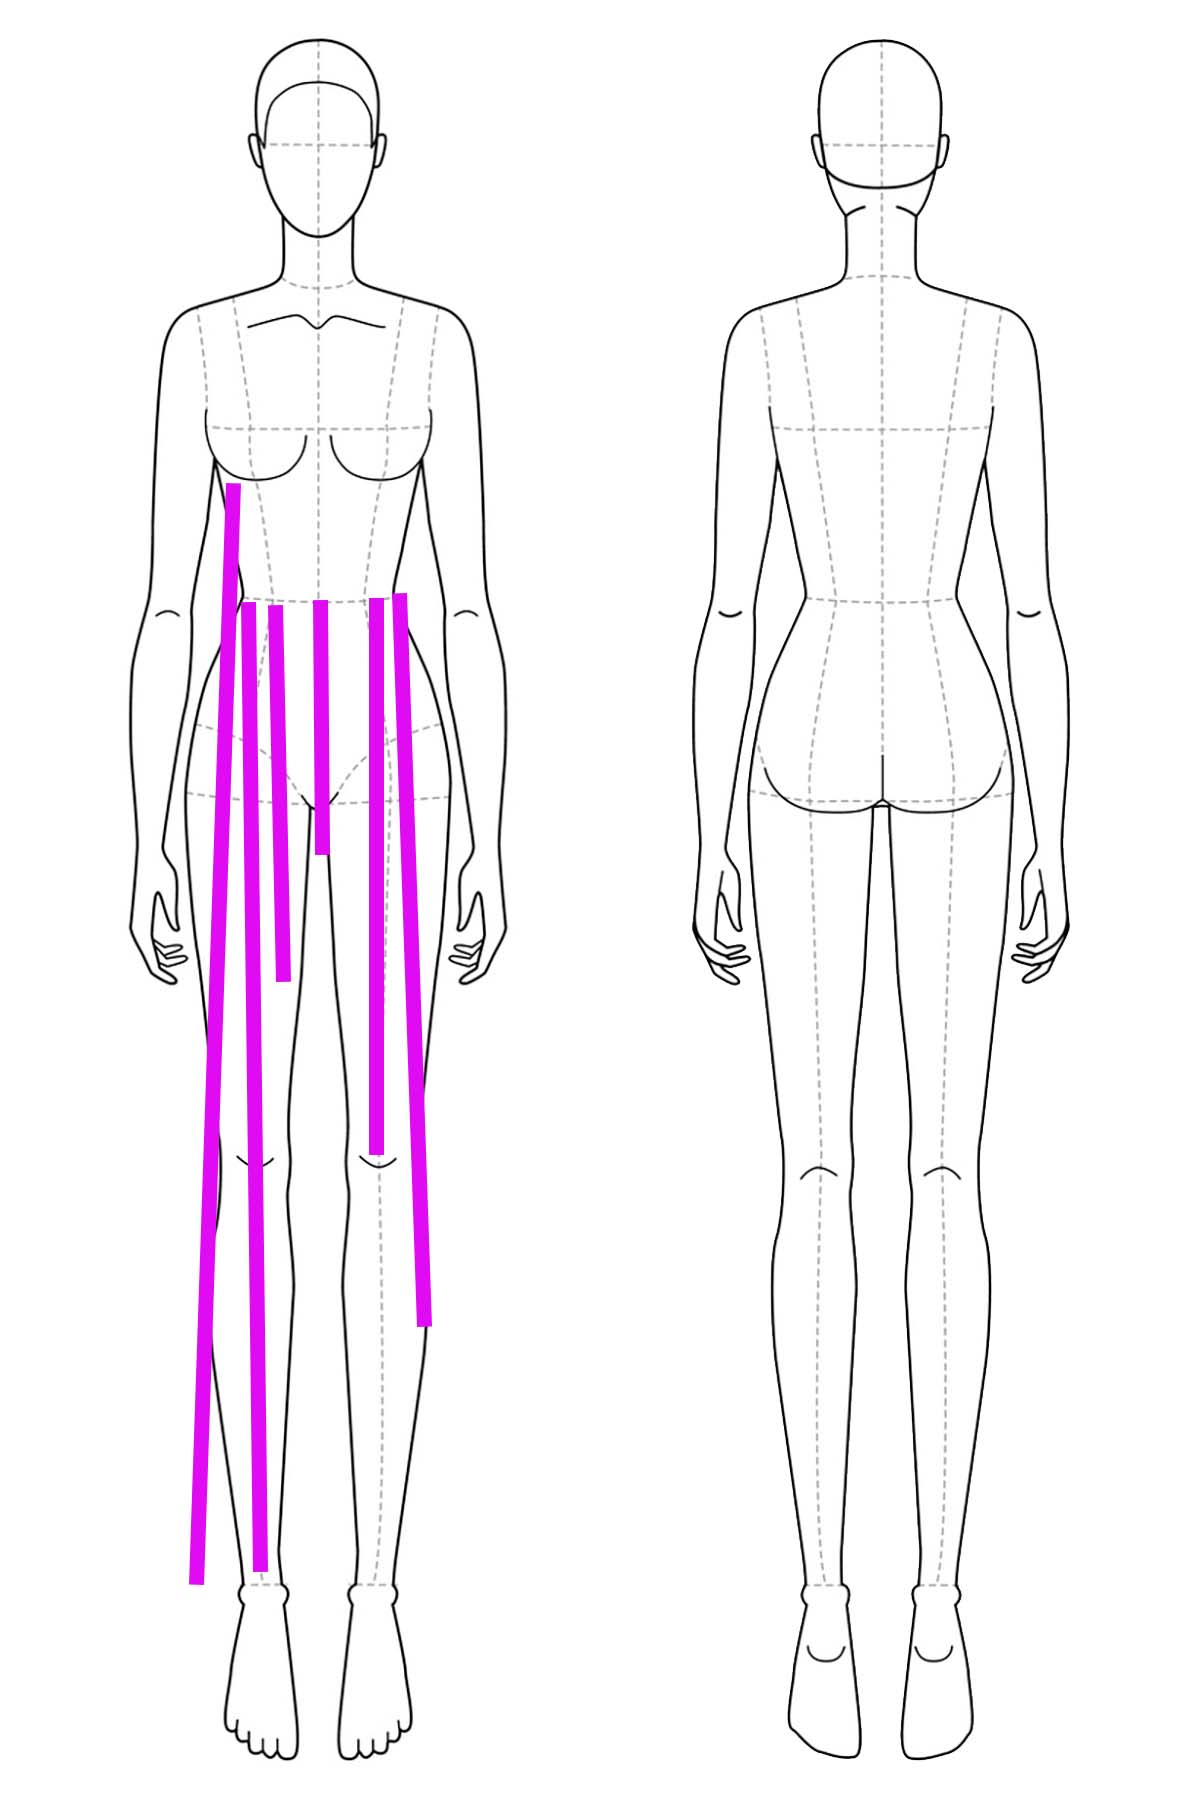 A set of line drawings of a female body, front and back views. A series of bright pink lines have been drawn on it to indicate multiple skirt length measurements.